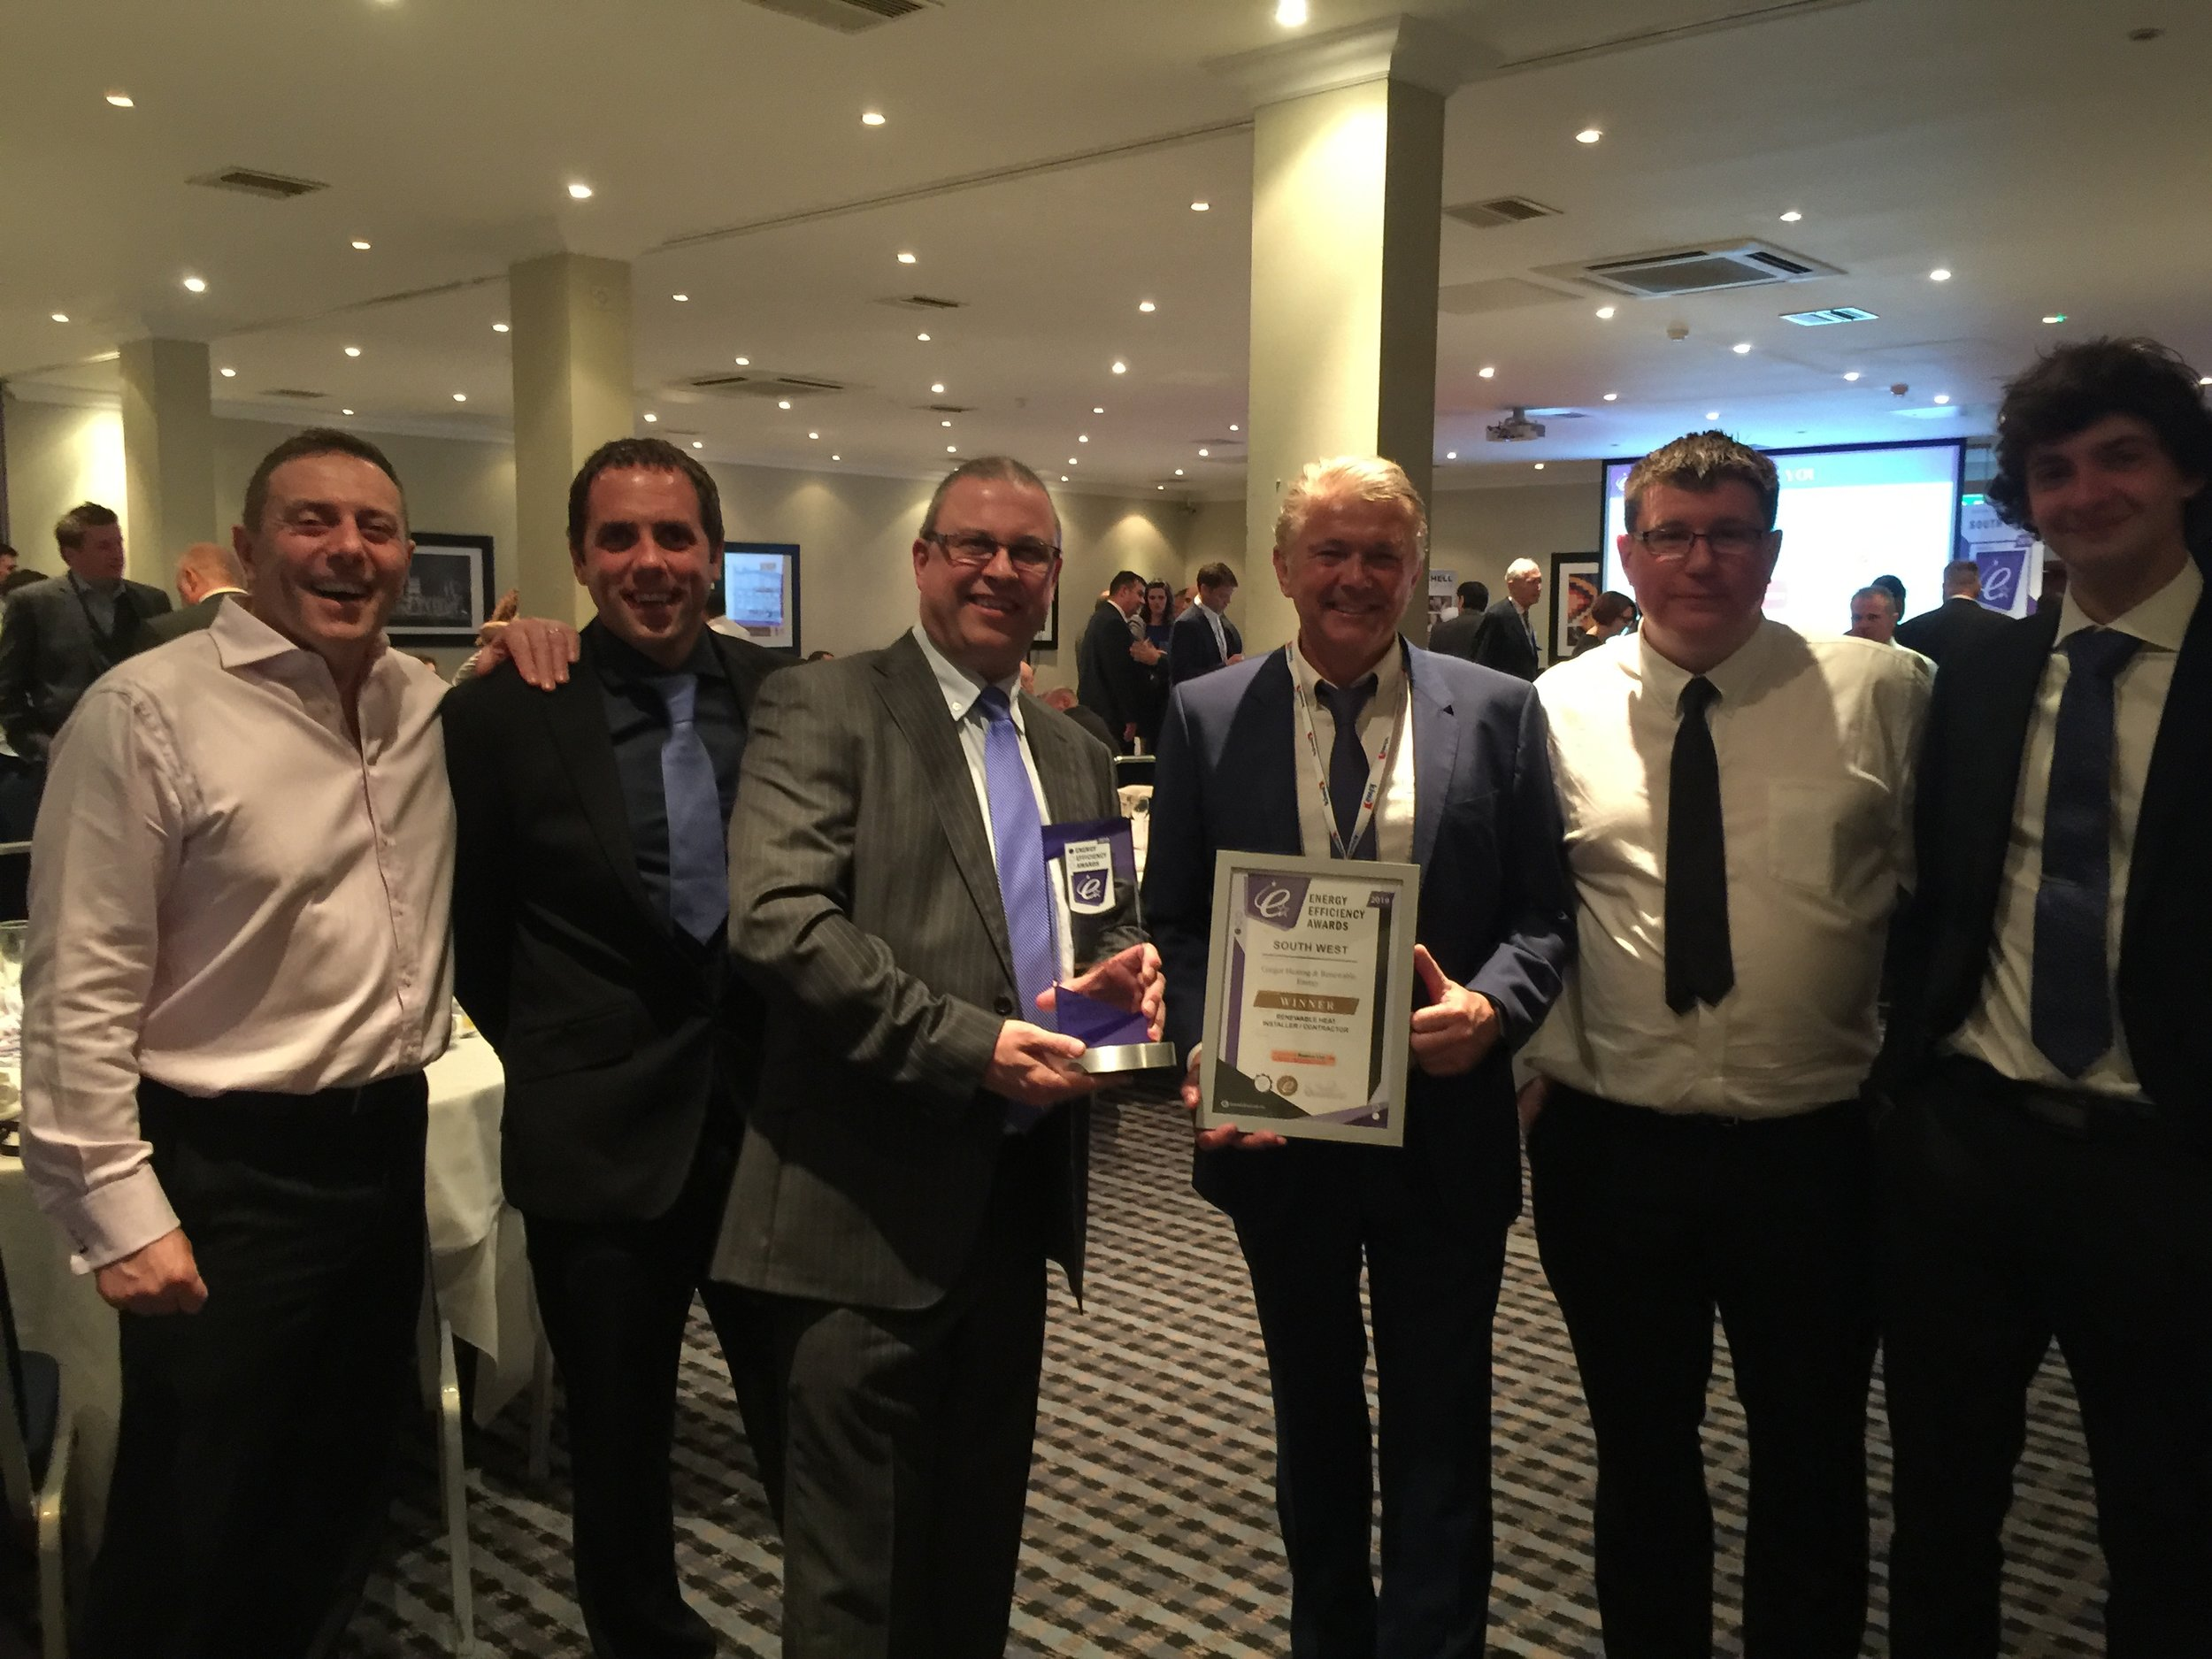 Gregor named Renewable Heat Installer at regional industry awards -